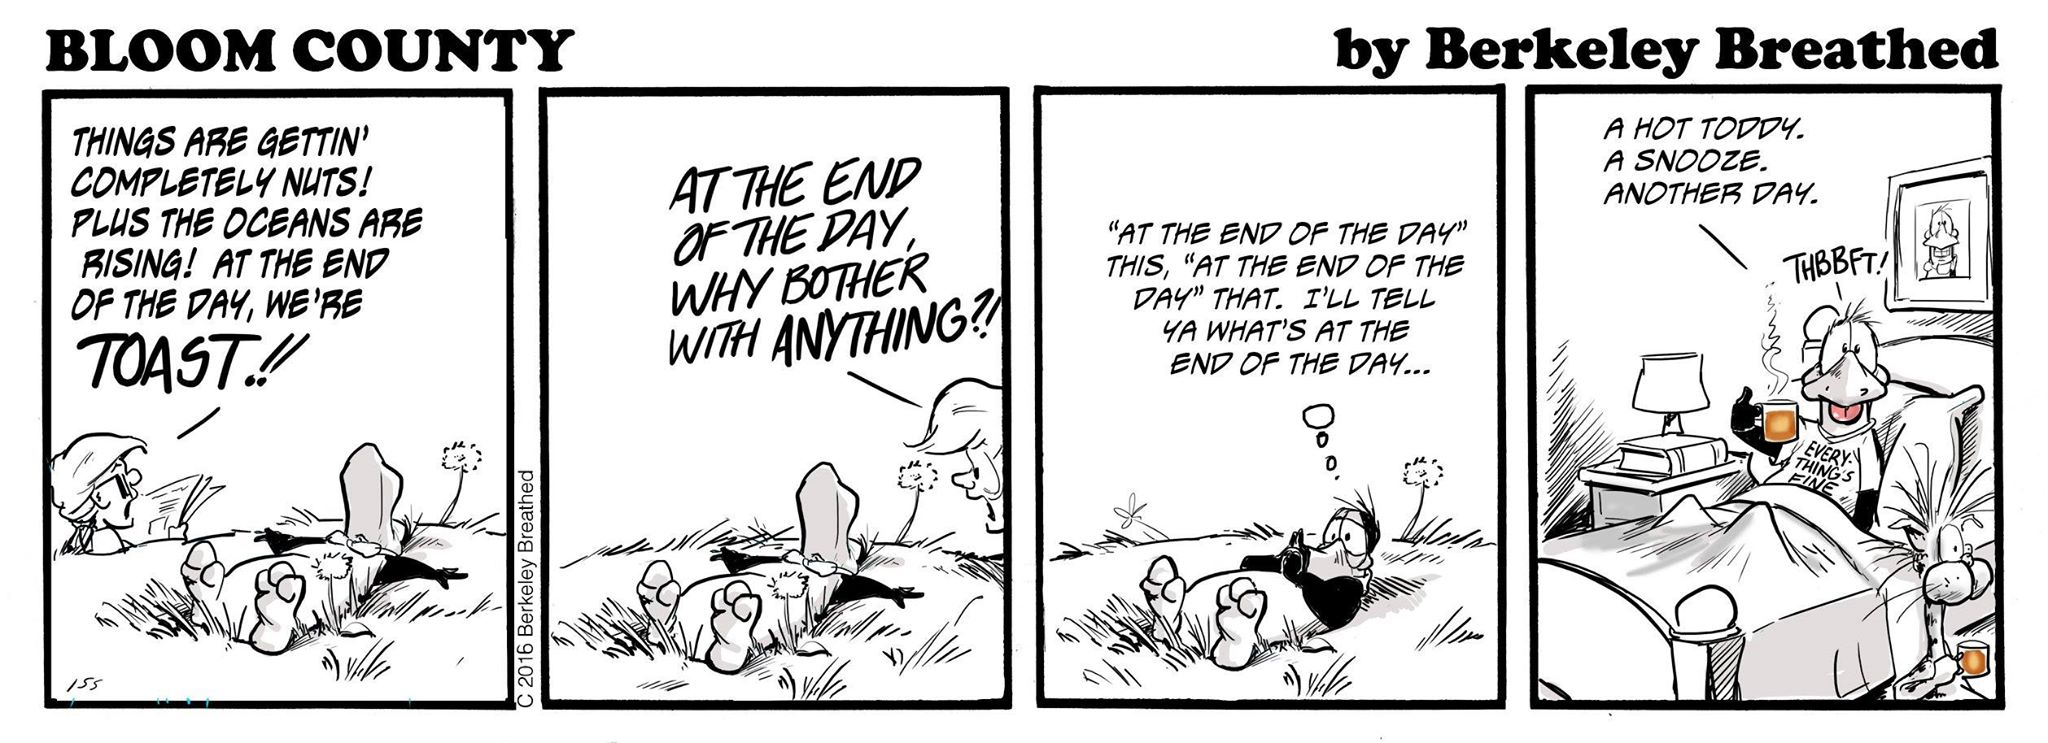 Bloom County 2016 #155